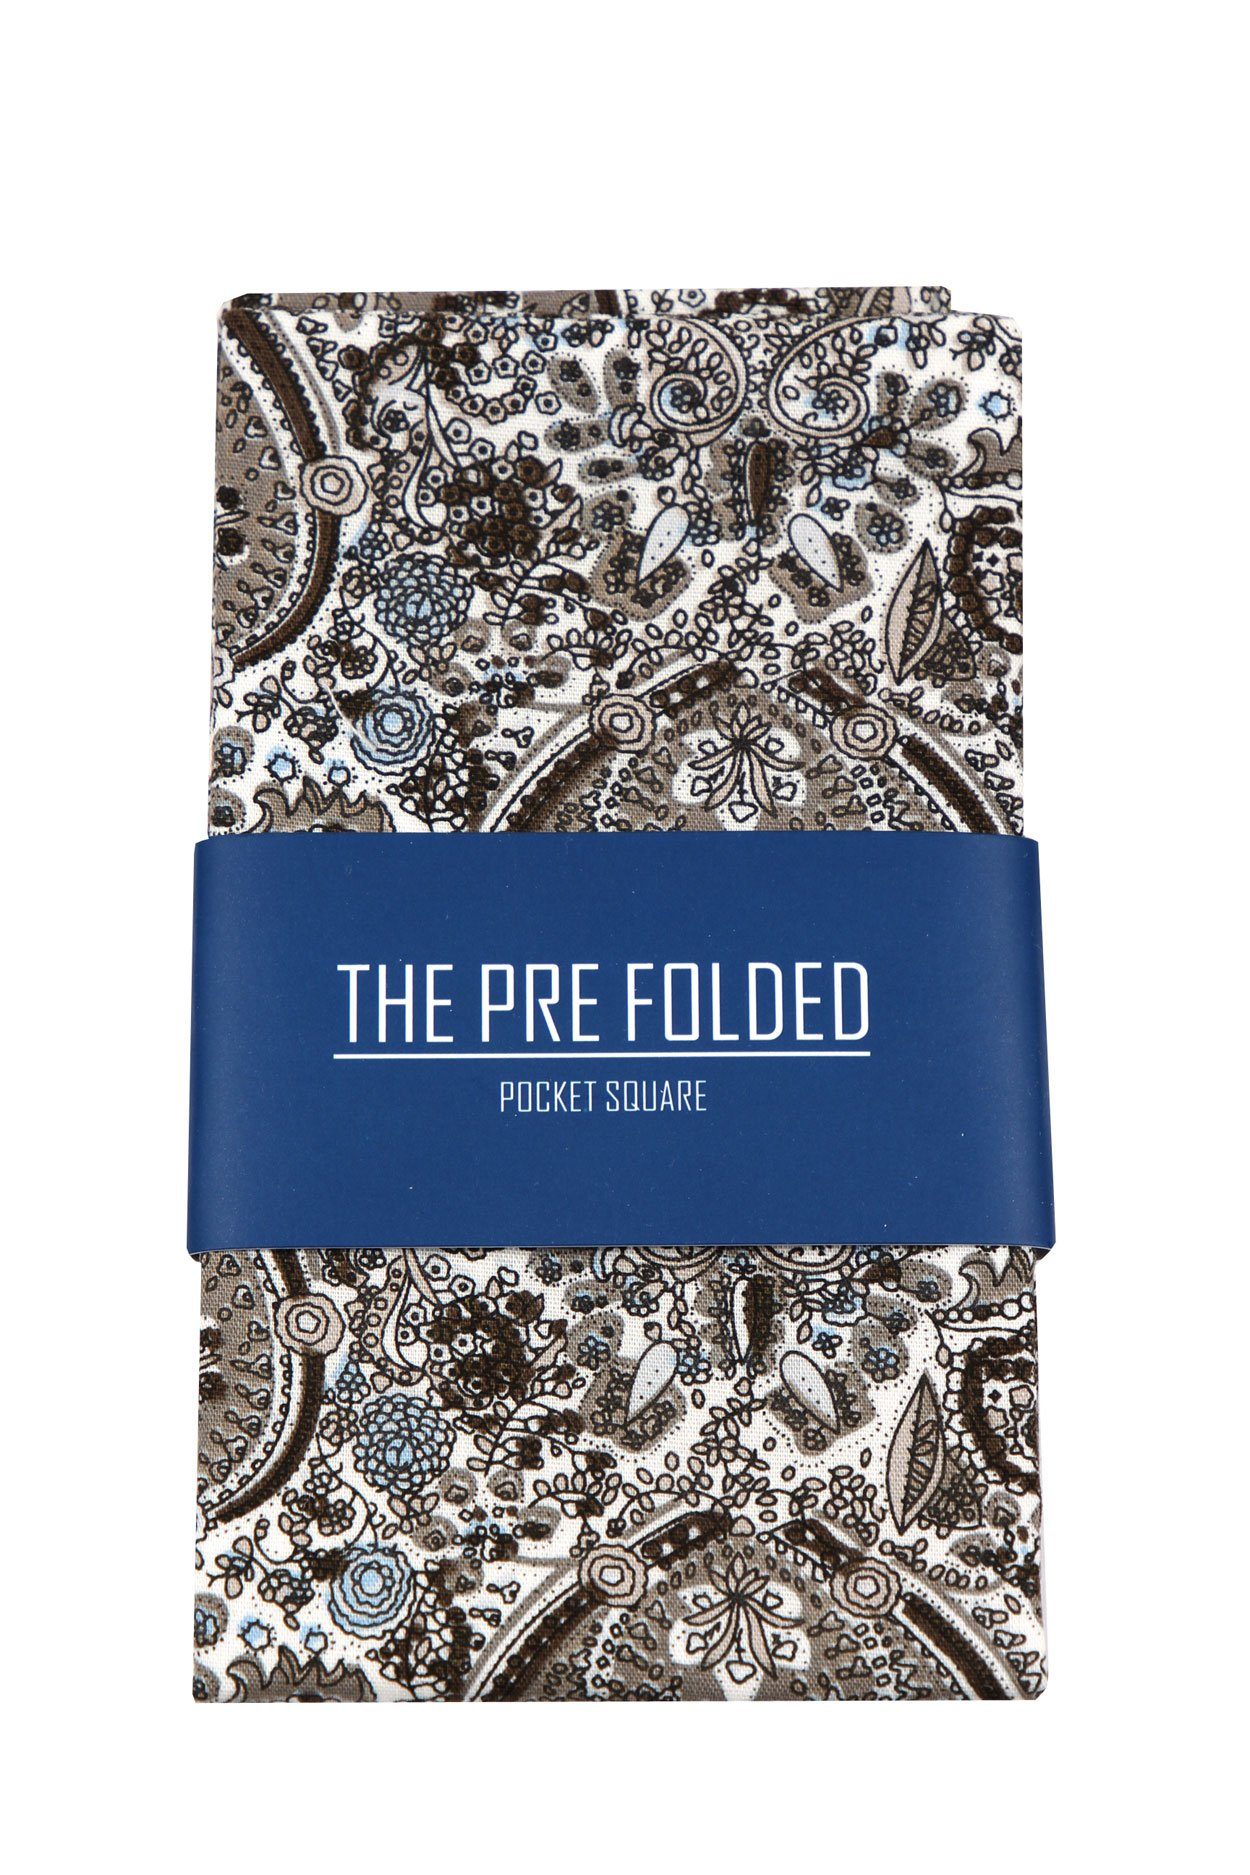 Pre-Folded Fashion Pocket Square Hanky for Men - Solid Dot Paisley Plaid Folded Hankies